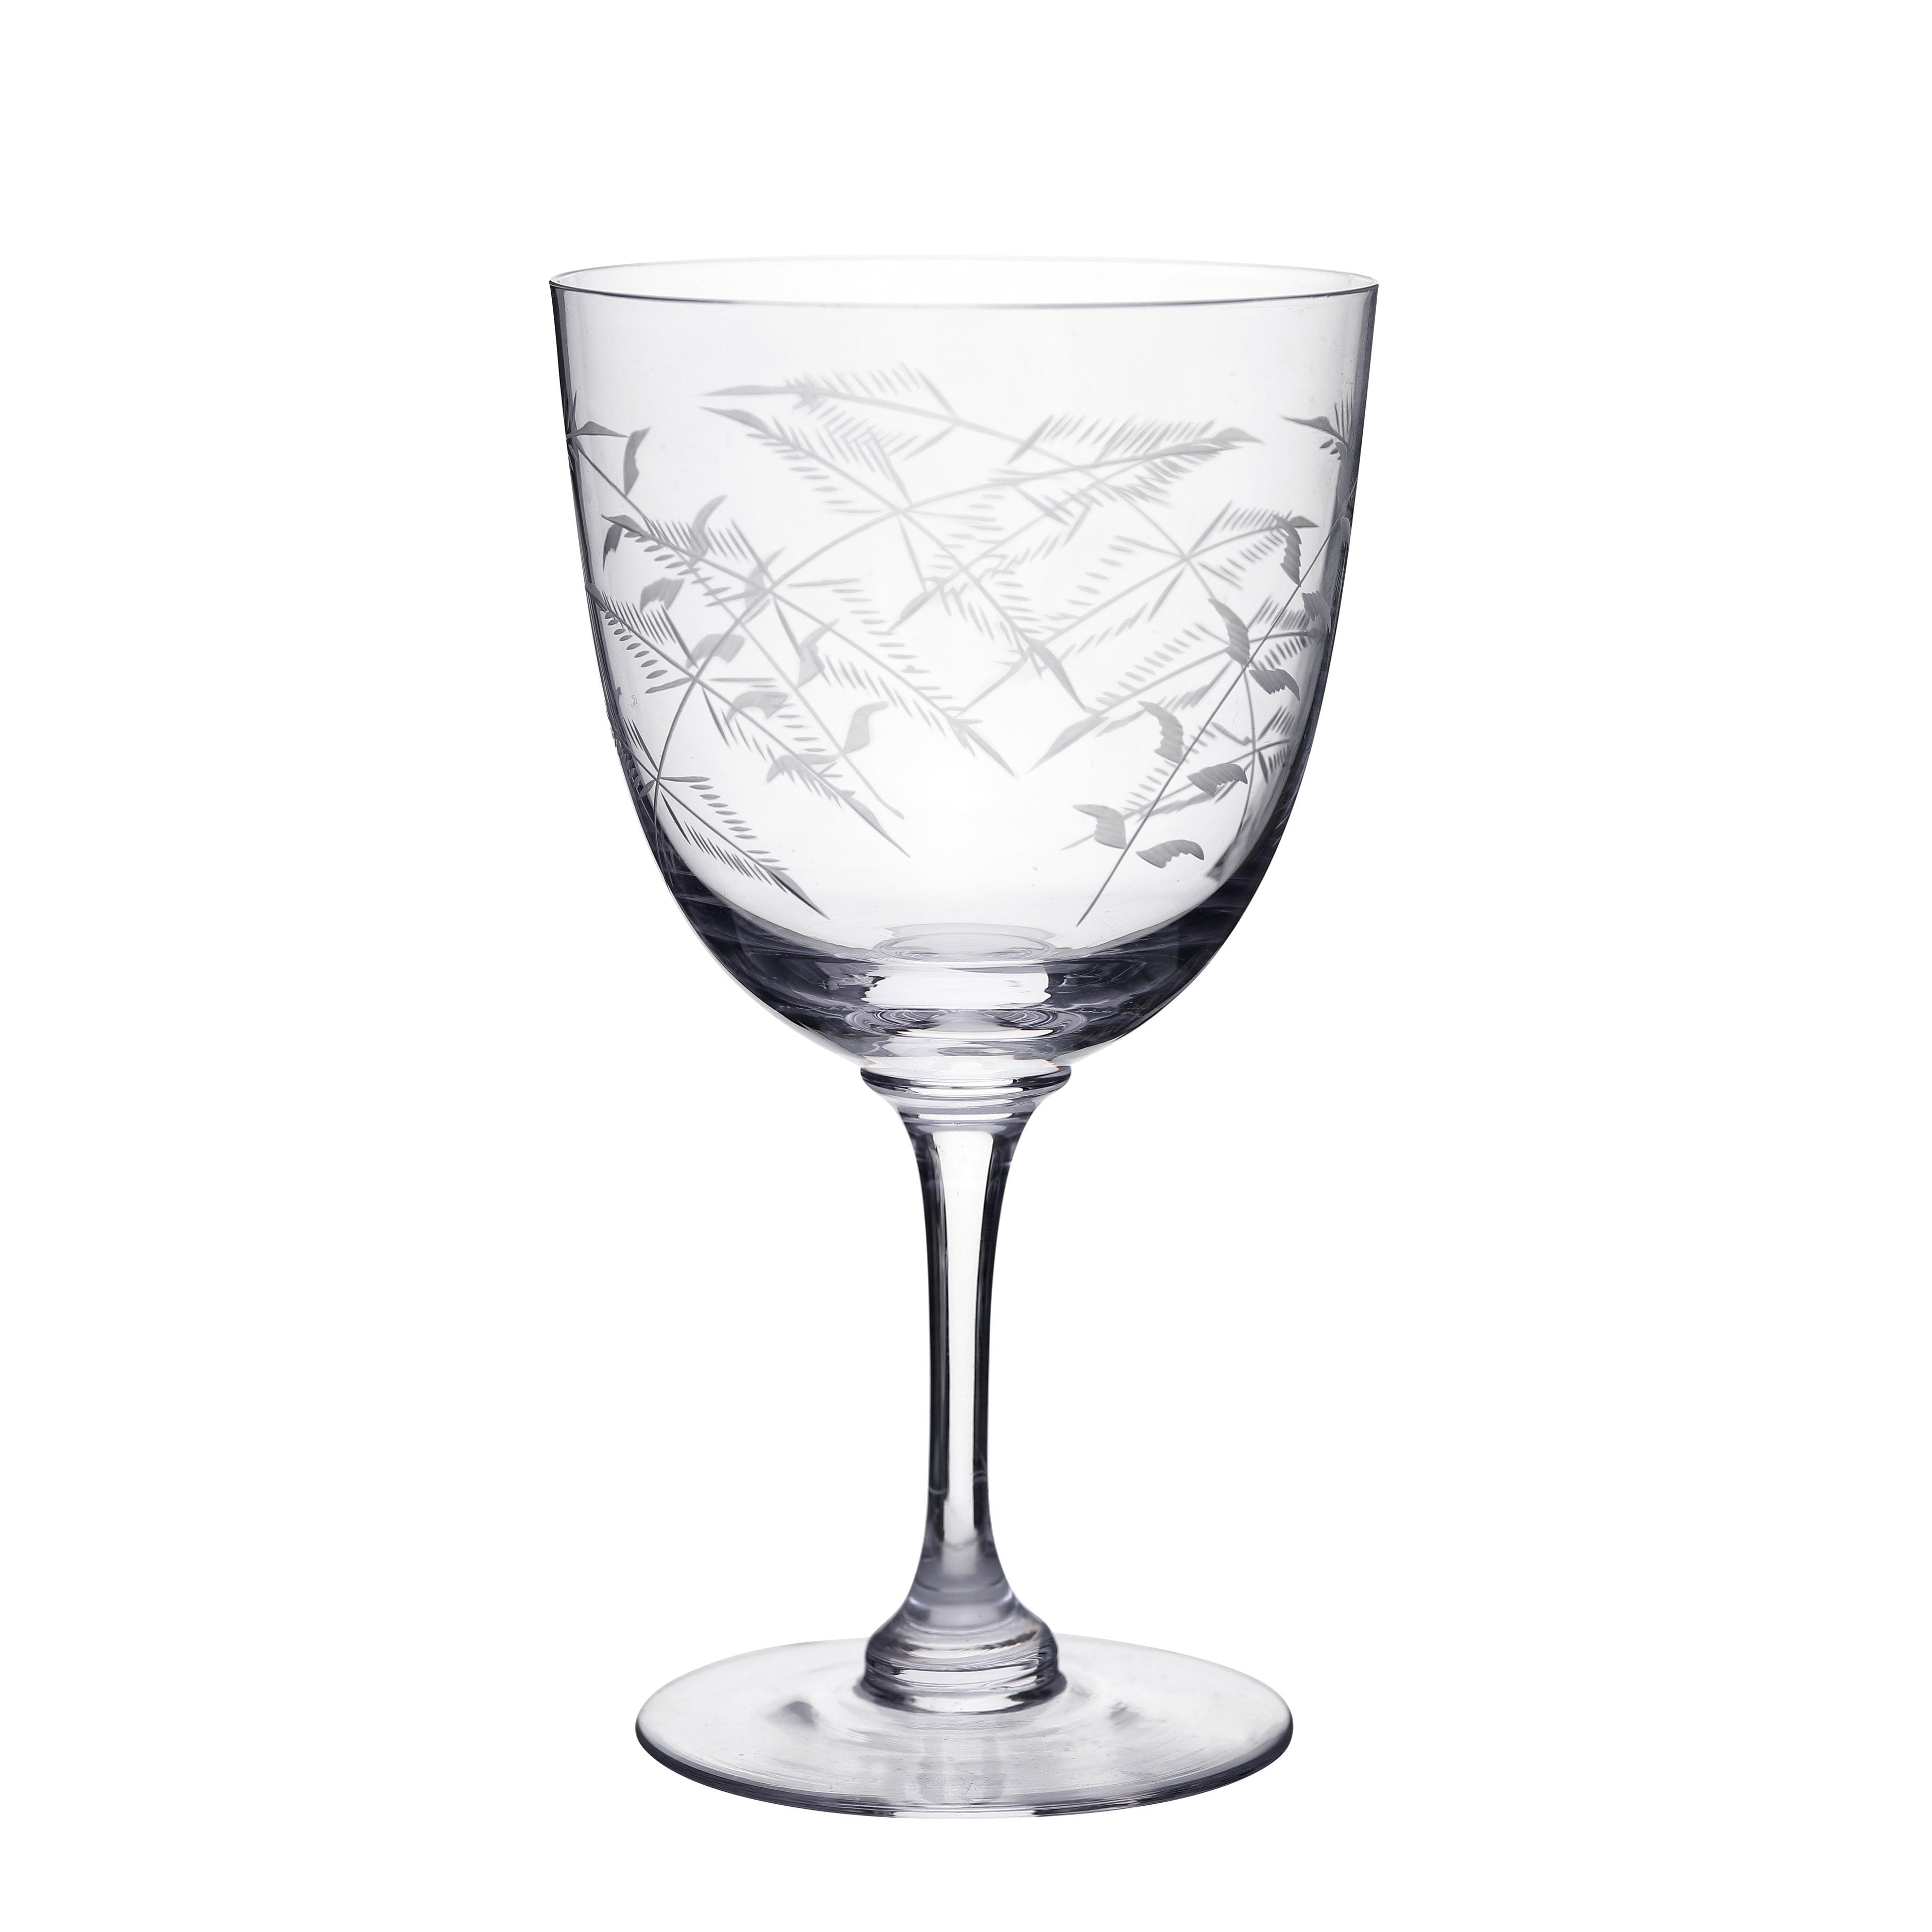 WINE GLASSES WITH FERN SET OF 6